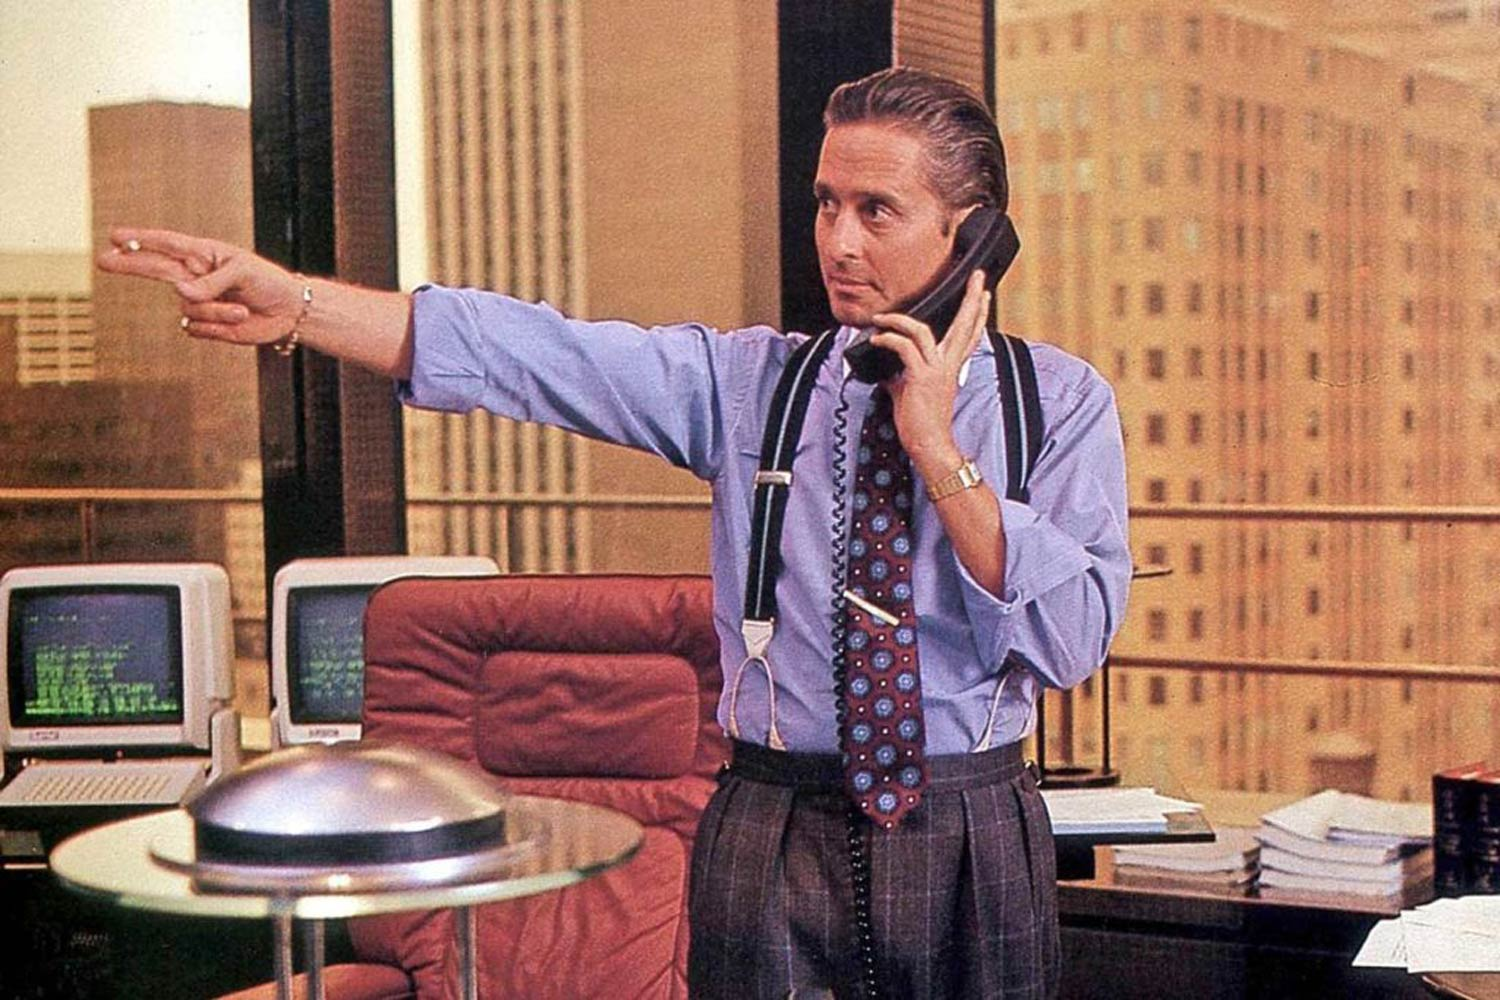 The Cartier Santos' fame saw its way to Hollywood on the wrist of actor Michael Douglas in his portrayal of Gordon Gekko in the 1987 film, Wall Street